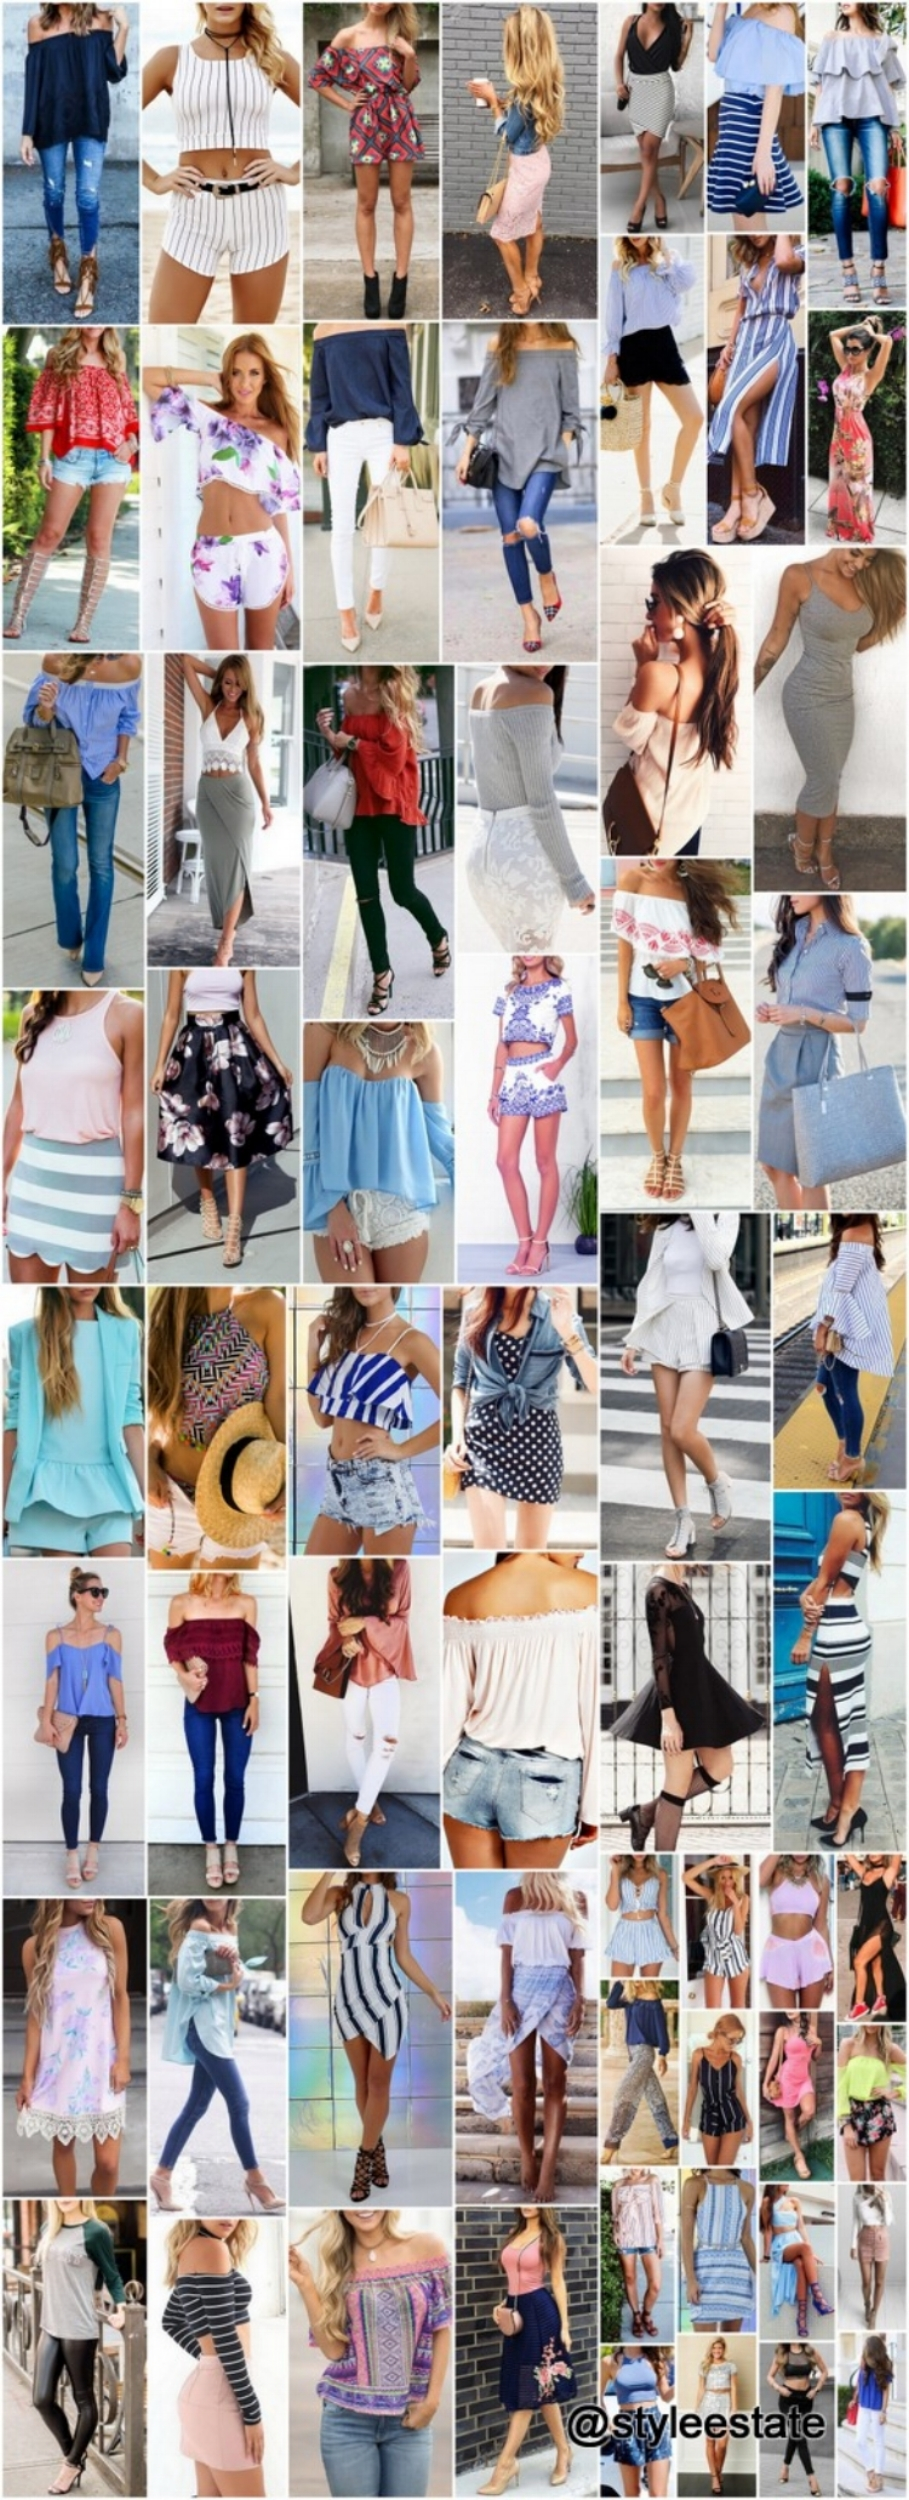 50 Popular Outfits To Copy For Summer ☀️